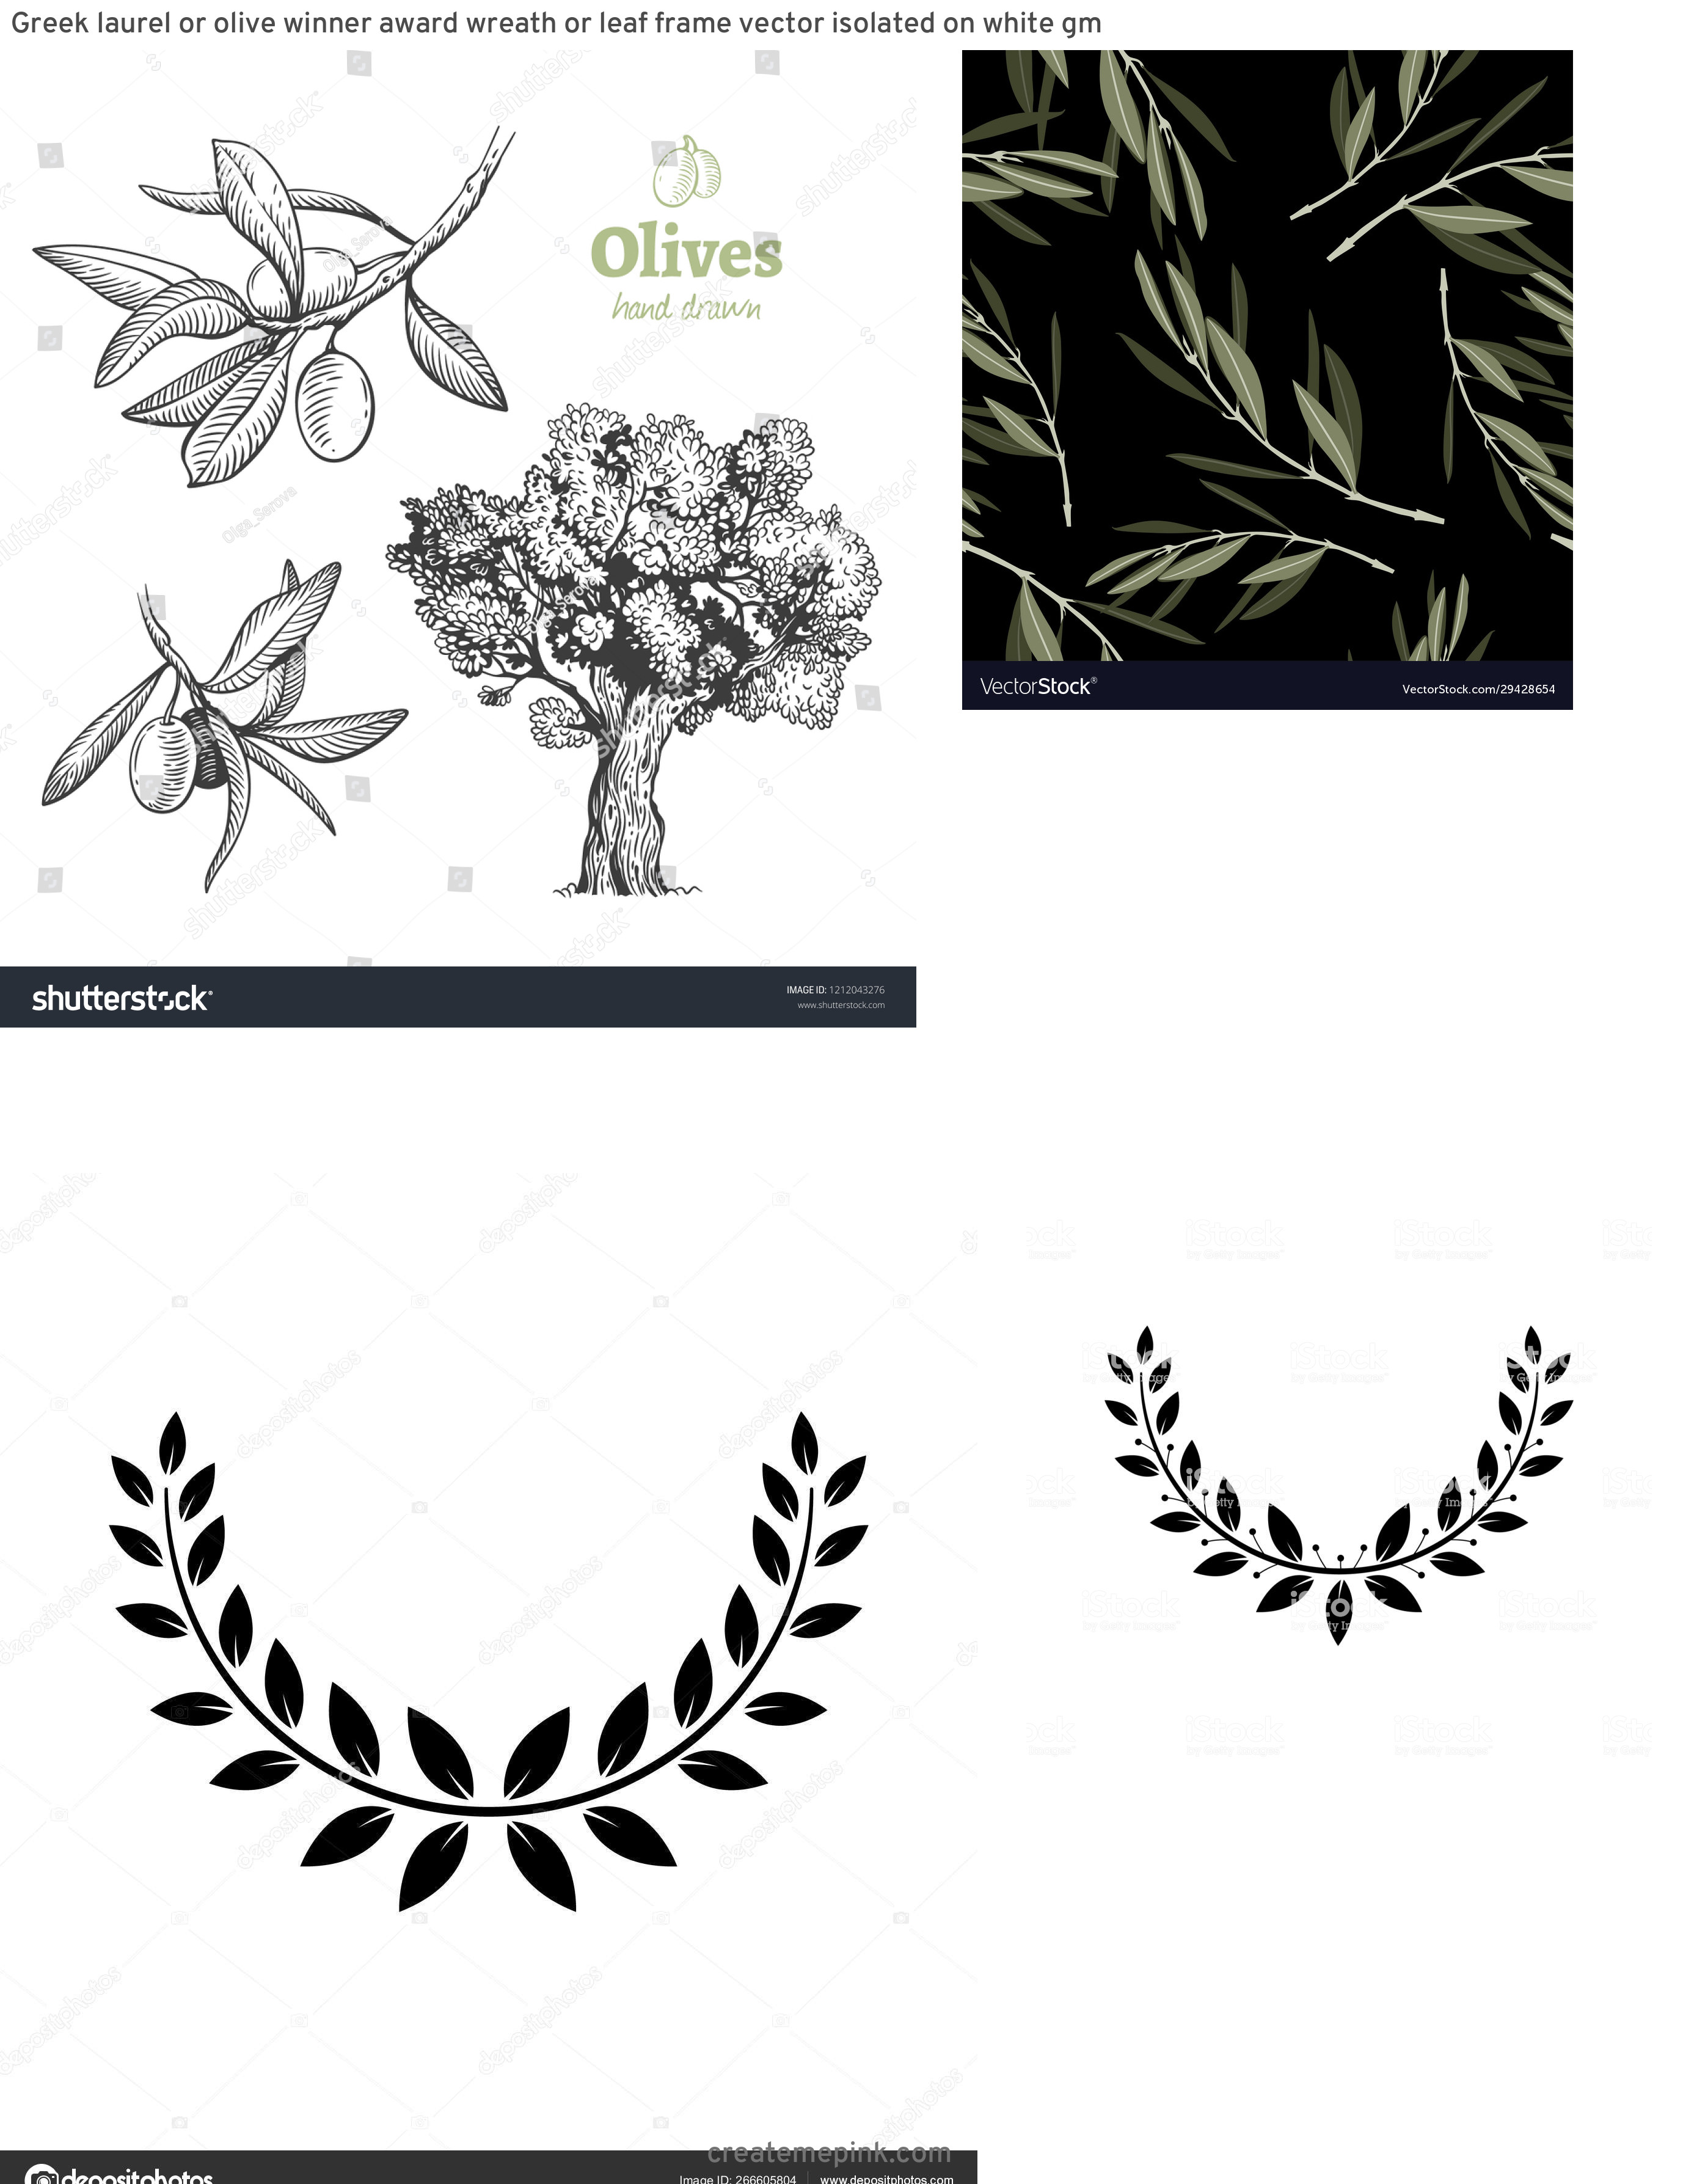 Olive Black And White Vector Leaves: Greek Laurel Or Olive Winner Award Wreath Or Leaf Frame Vector Isolated On White Gm